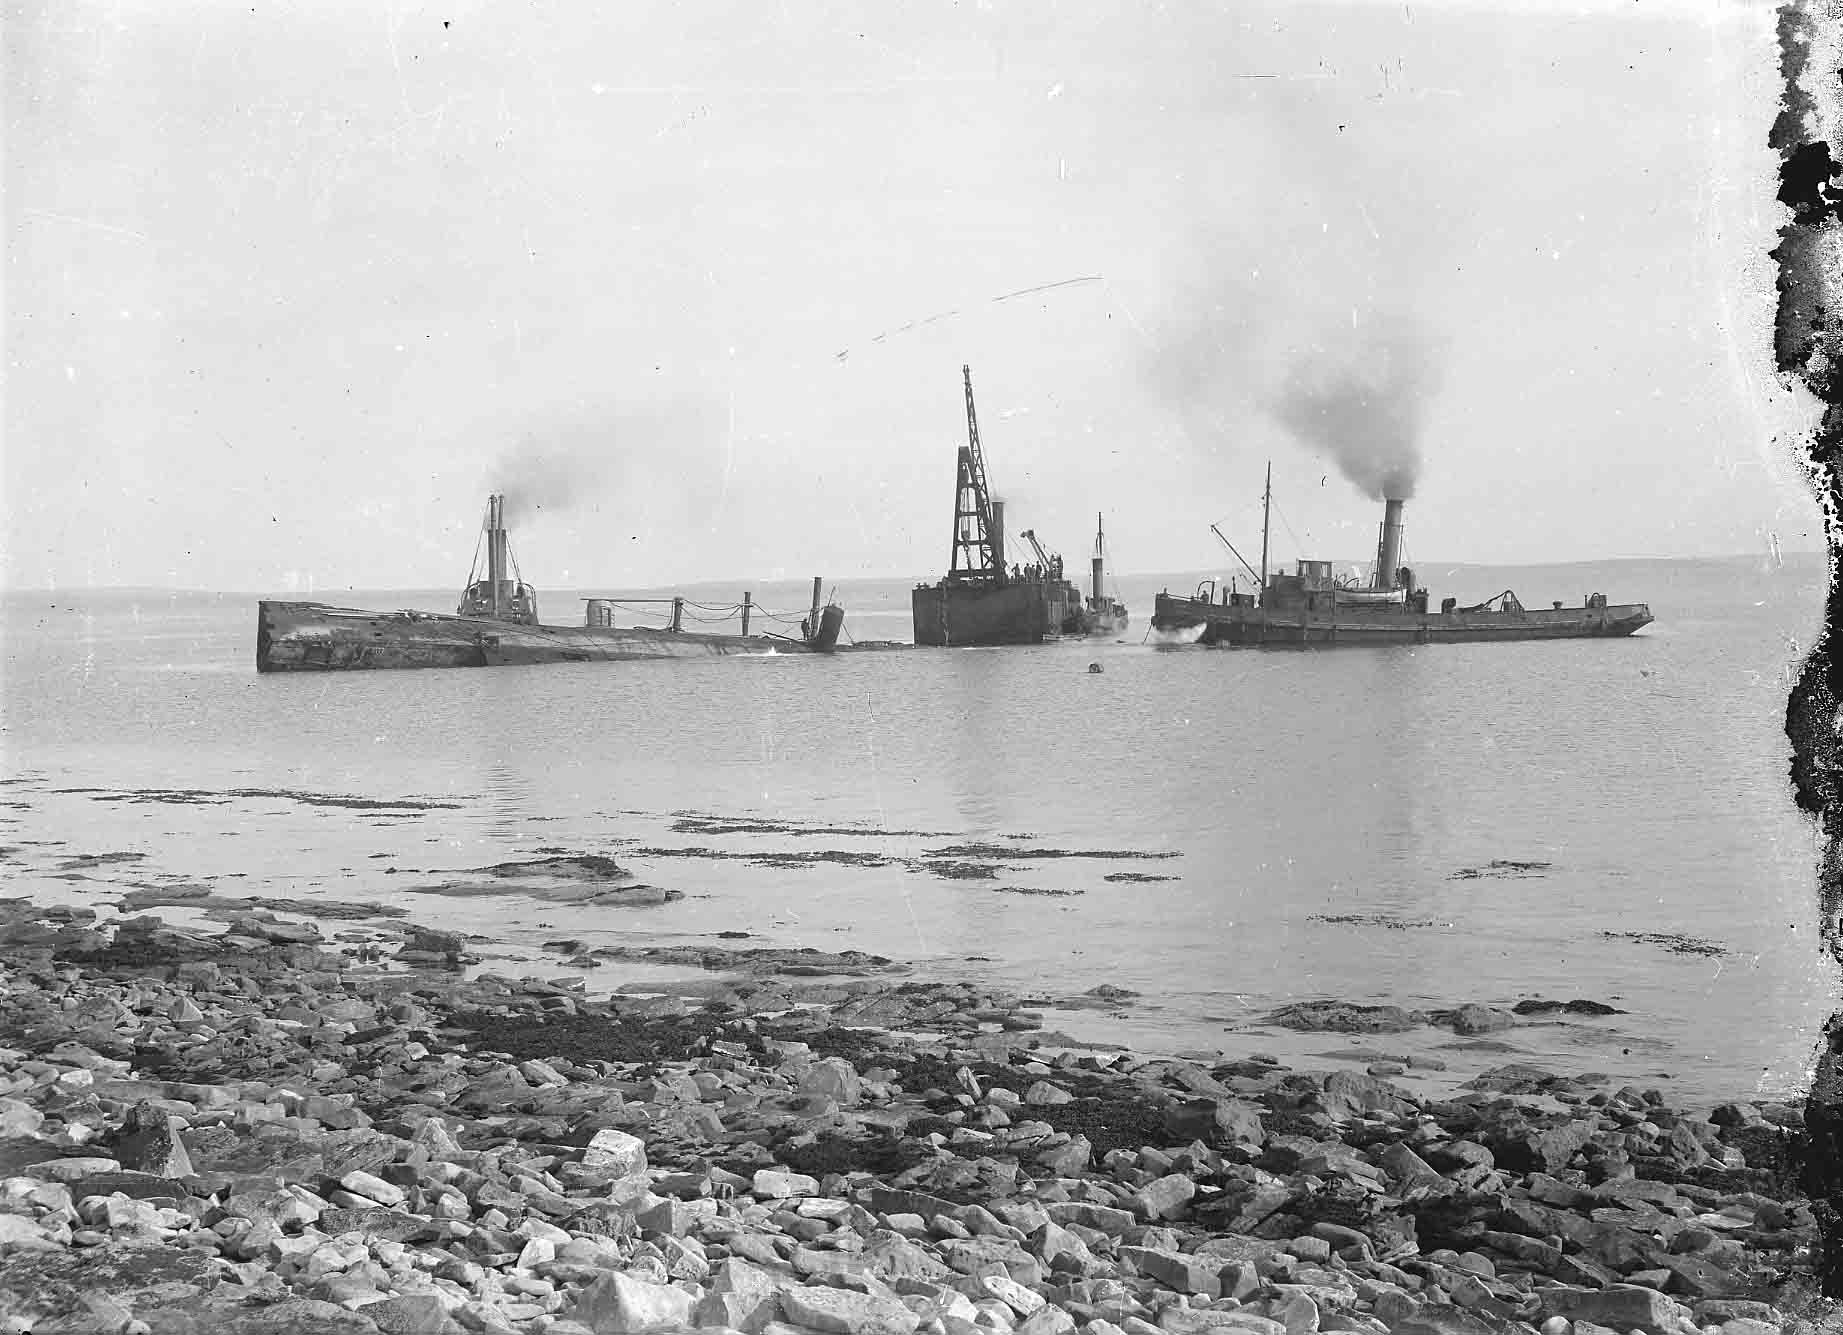 The subsequent salvage of the ships was an incredible feat of engineering - image courtesy of the Orkney Library and Archive